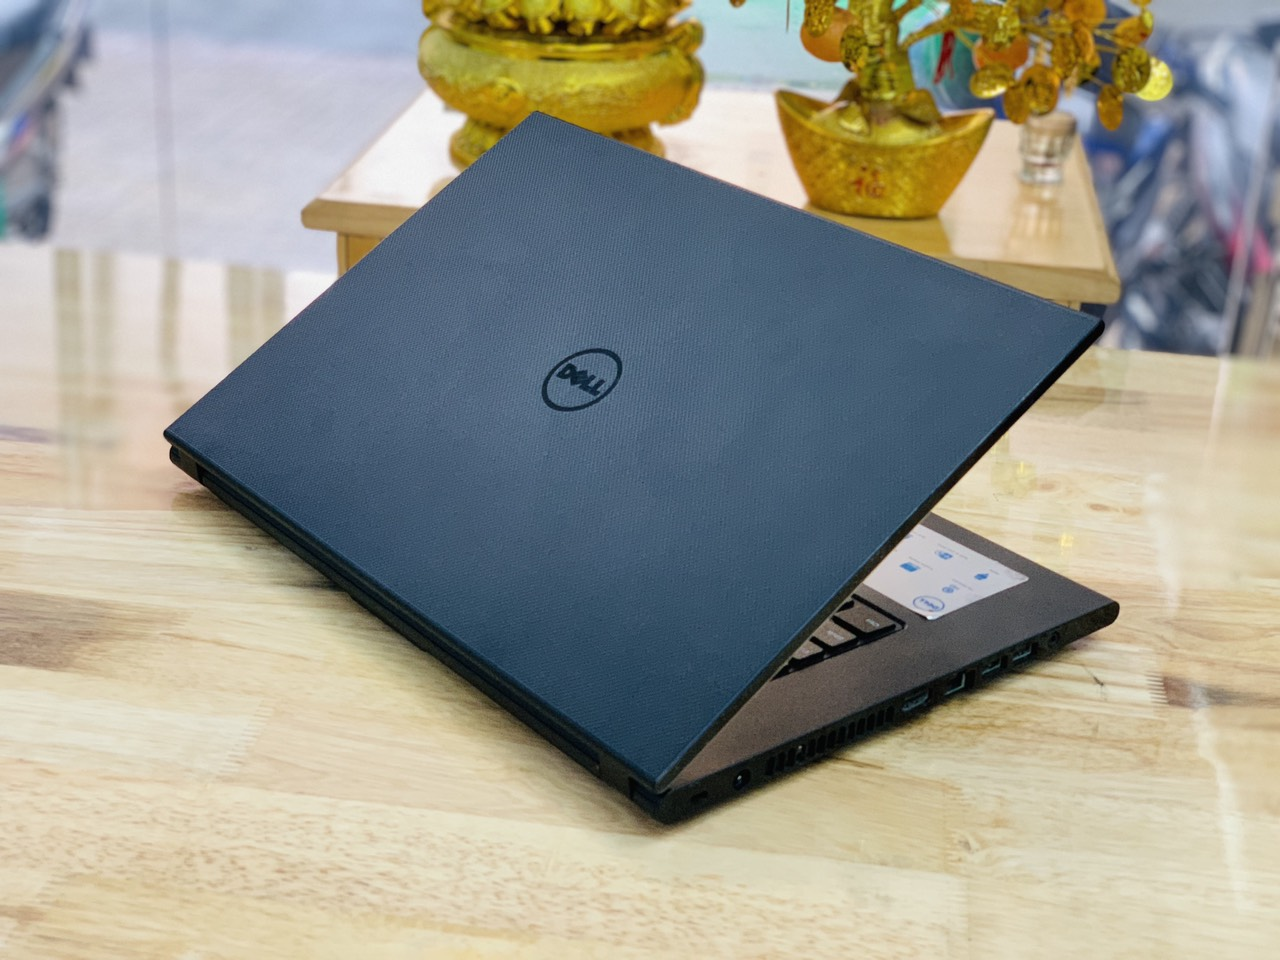 Dell inspiron 3442 Cũ